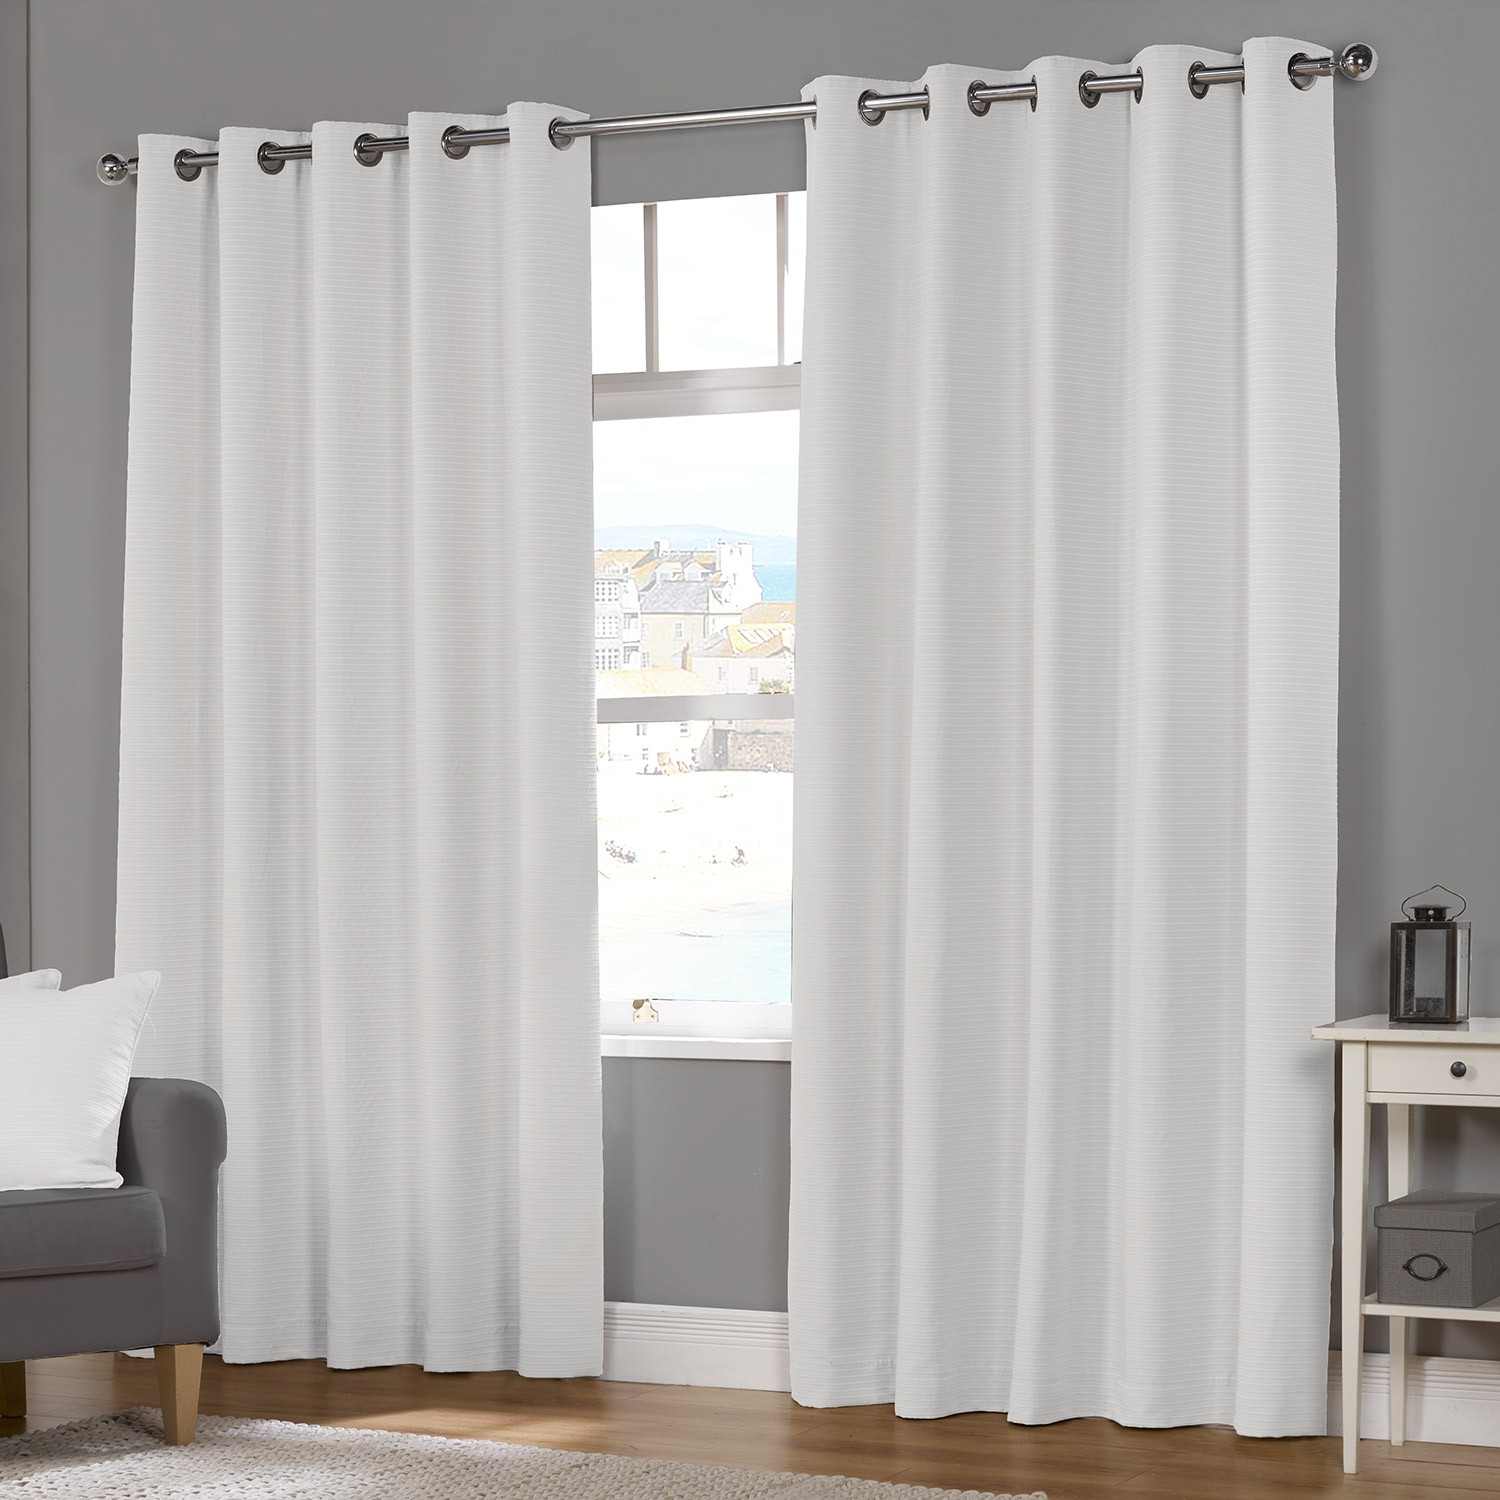 Double Lined Curtains Curtain Ideas